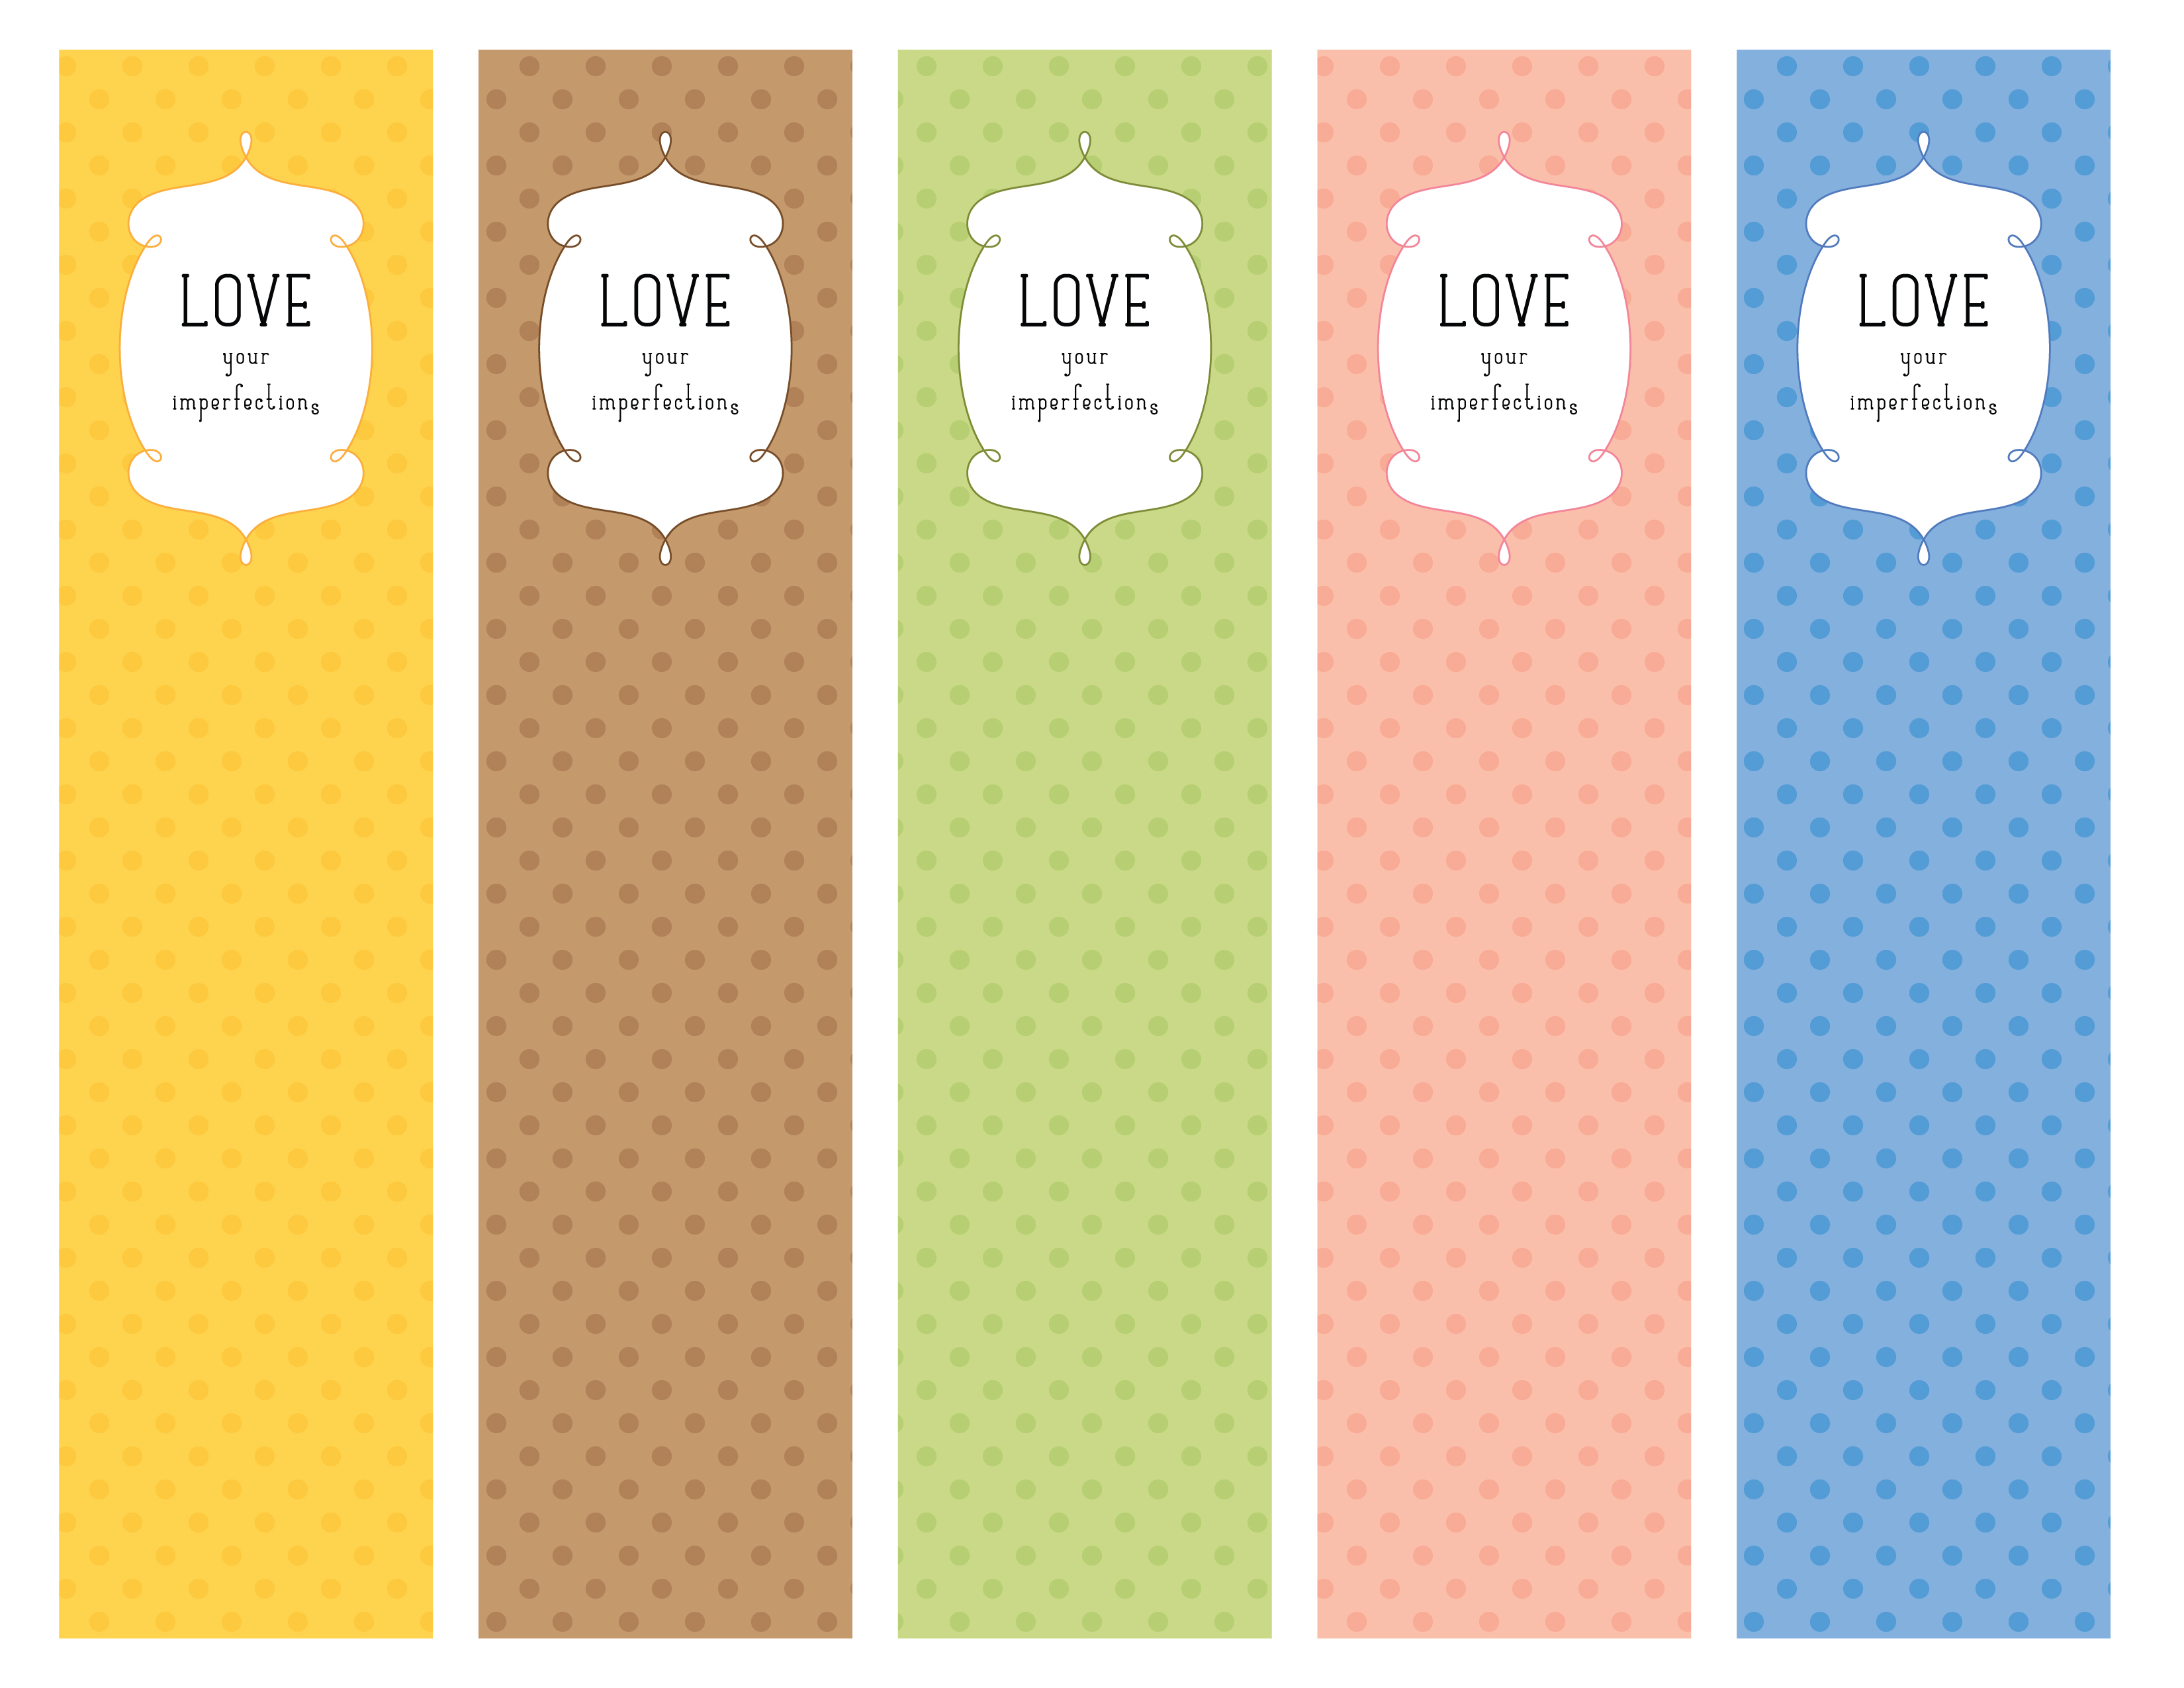 7 Images of Love Bookmarks Free Printables